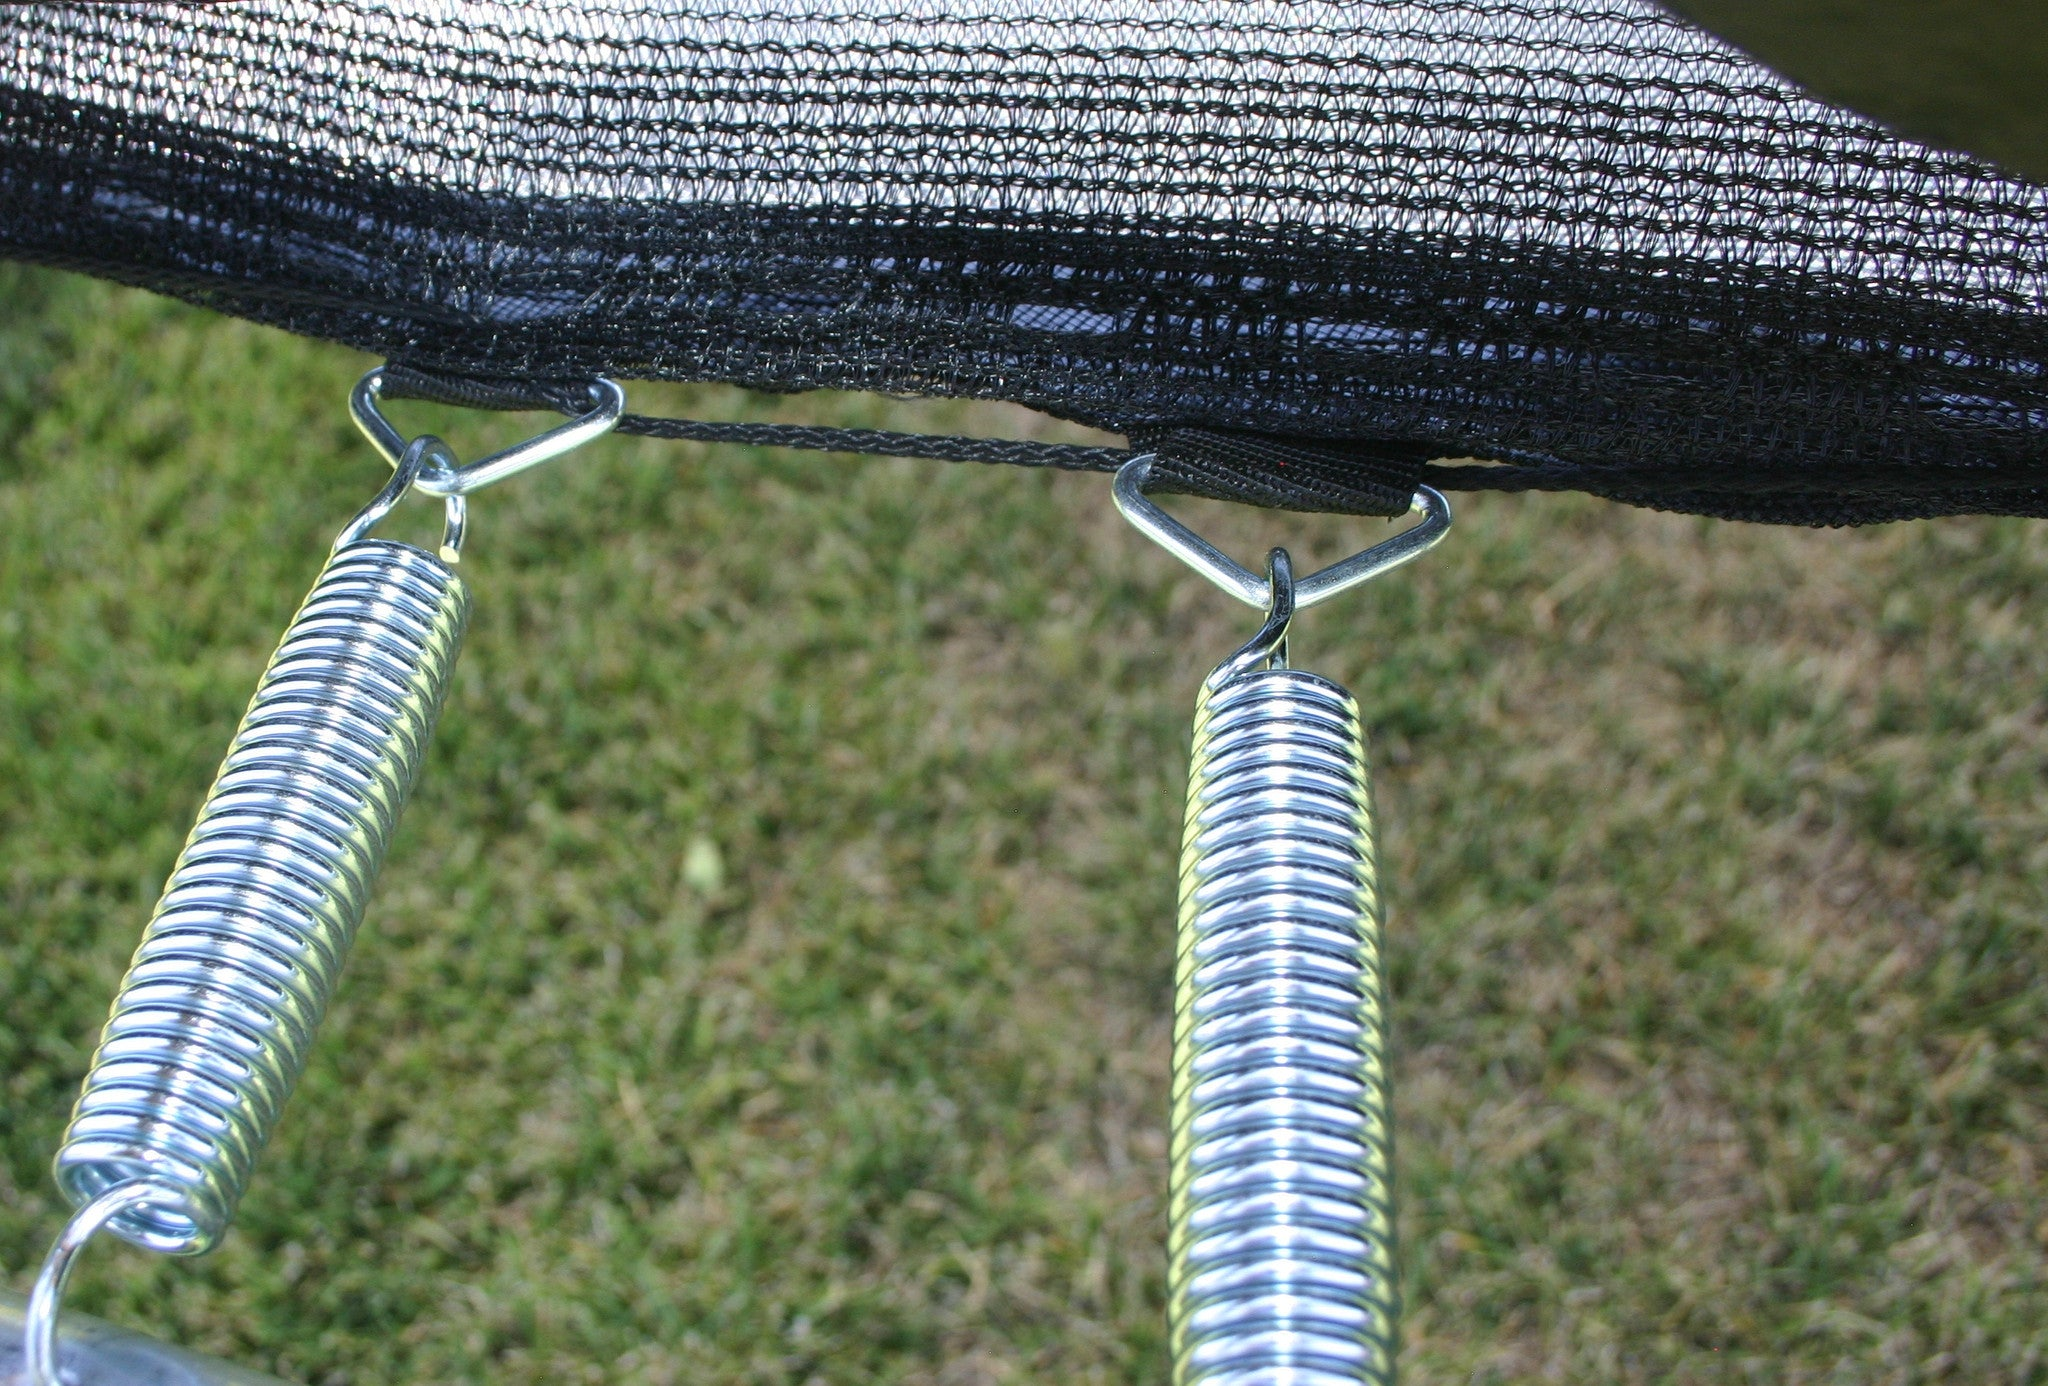 Trampoline Parts-Safety Net Enclosure Tie Downs (Full Set of 12)